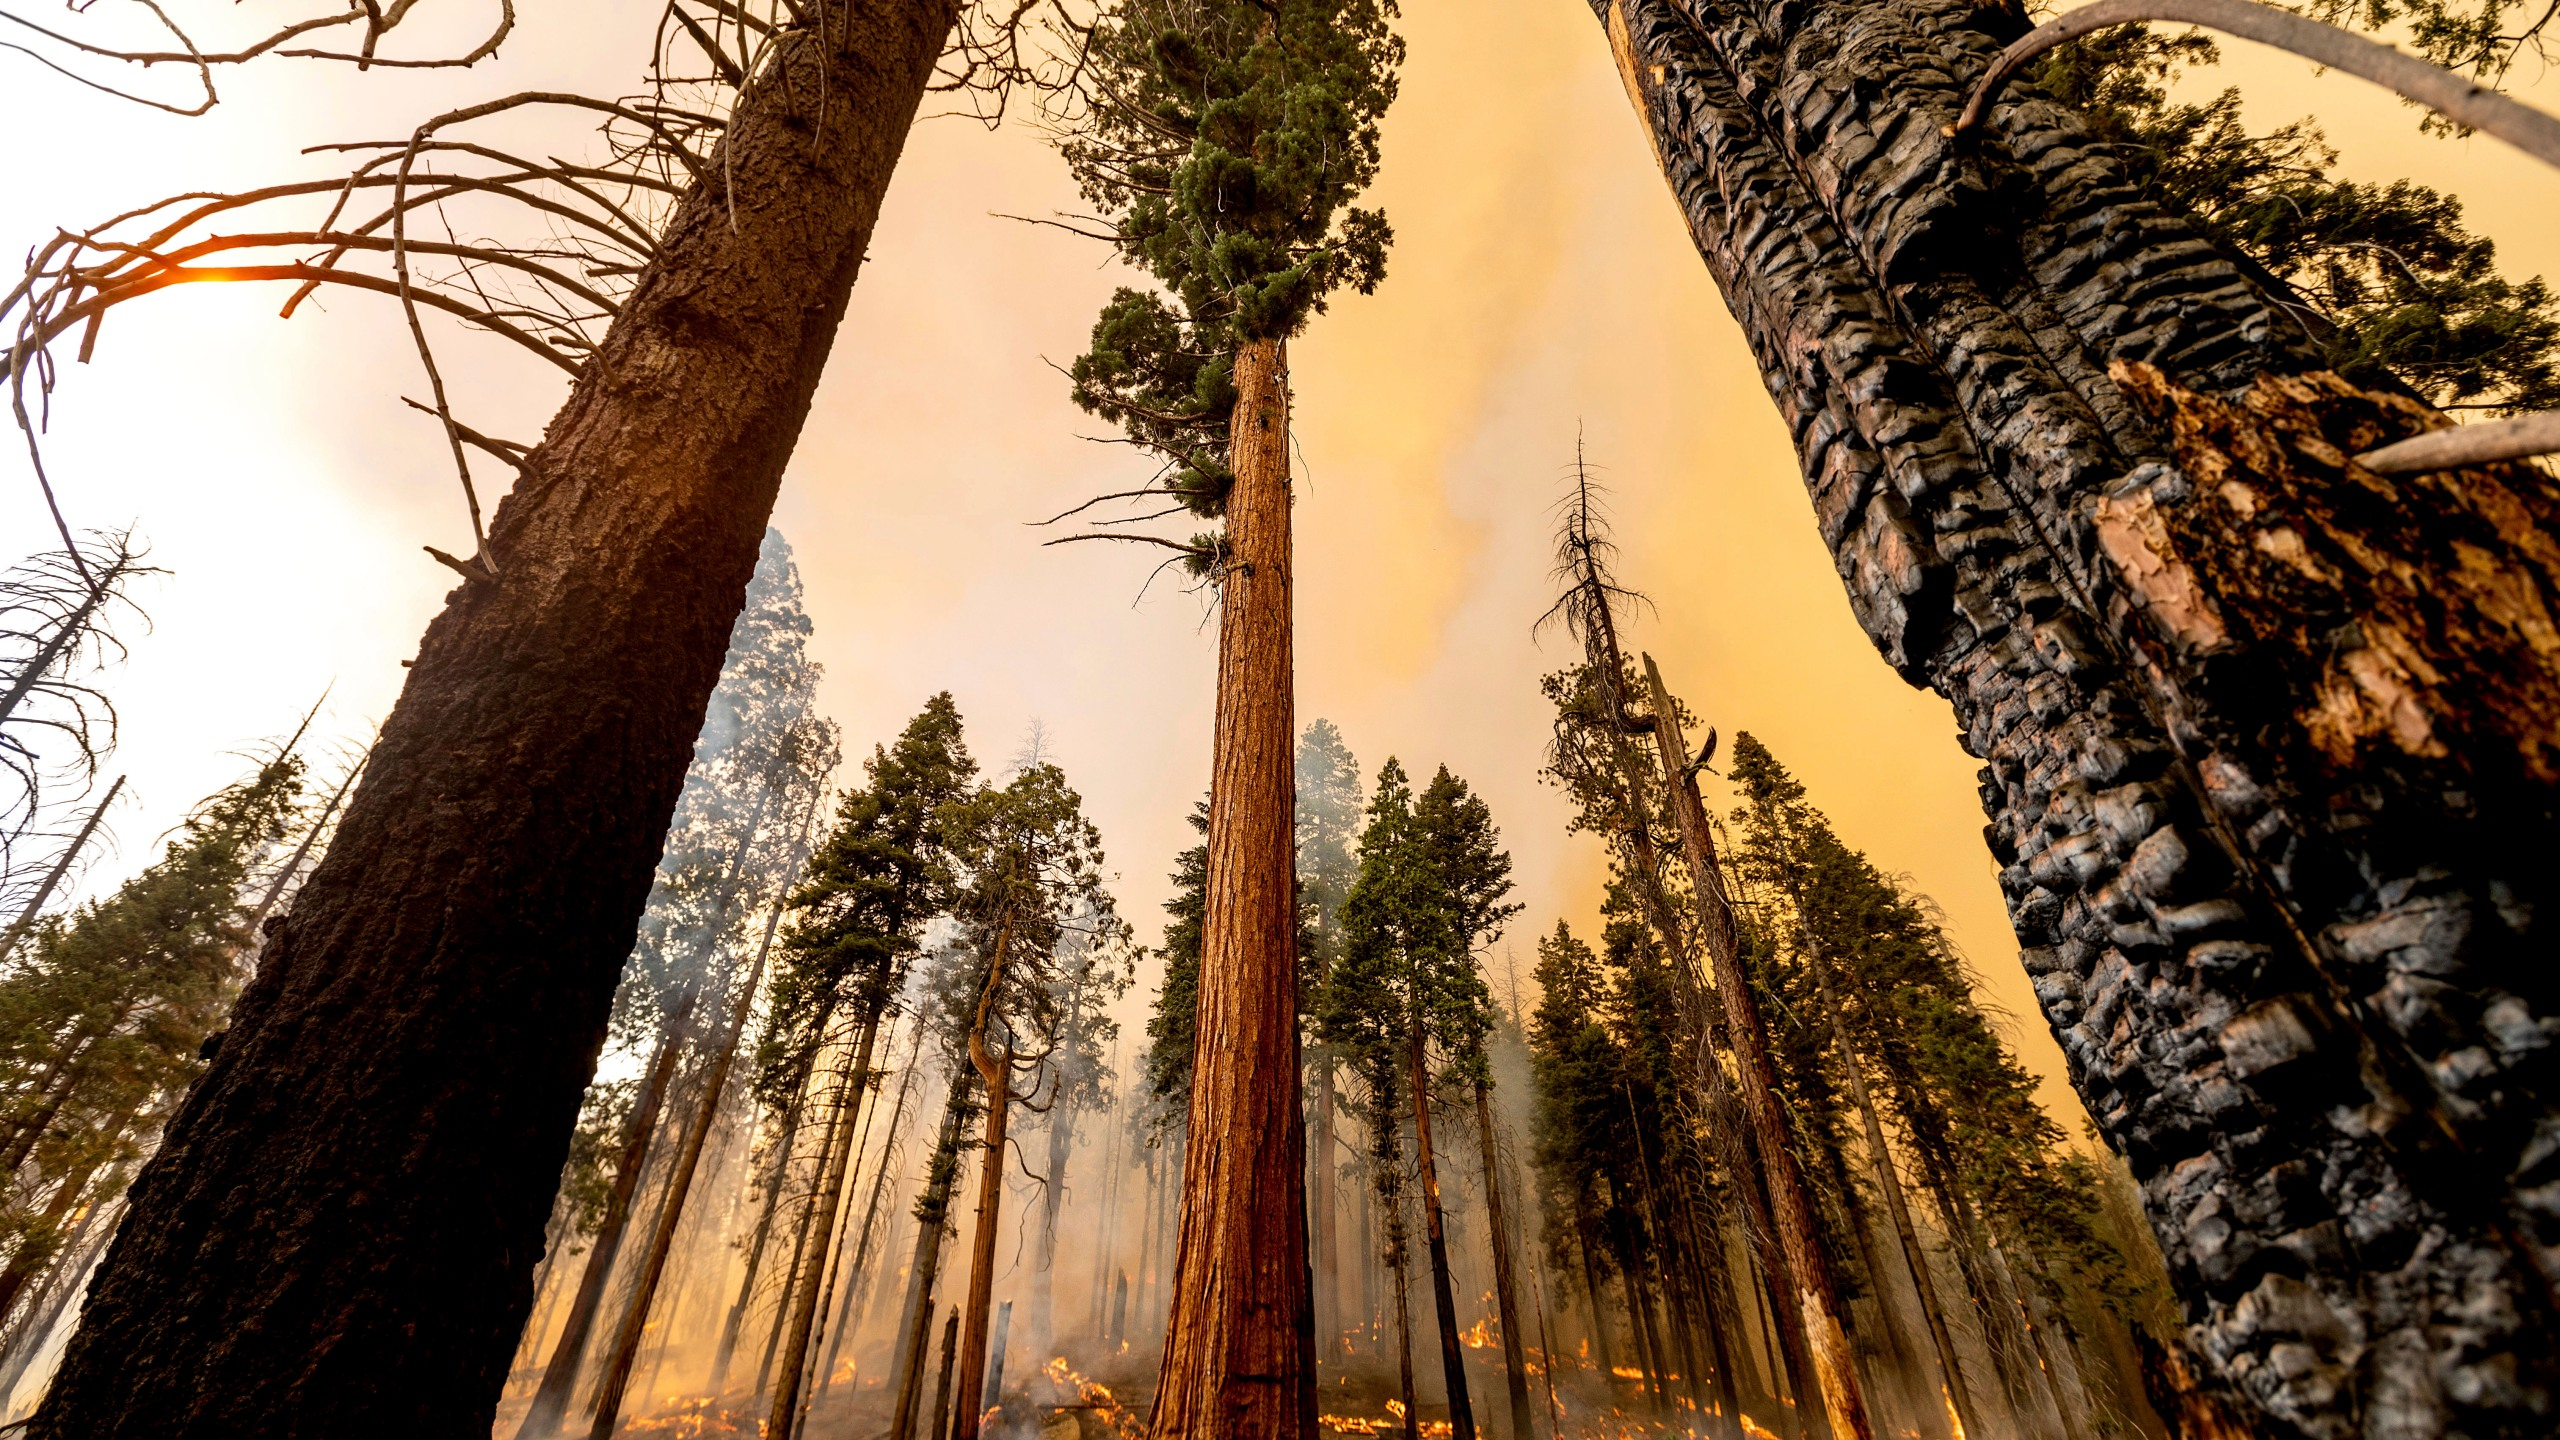 A tree stands in the Trail of 100 Giants grove as flames from the Windy Fire burn in Sequoia National Forest, Calif., on Sunday, Sept. 19, 2021. (AP Photo/Noah Berger)